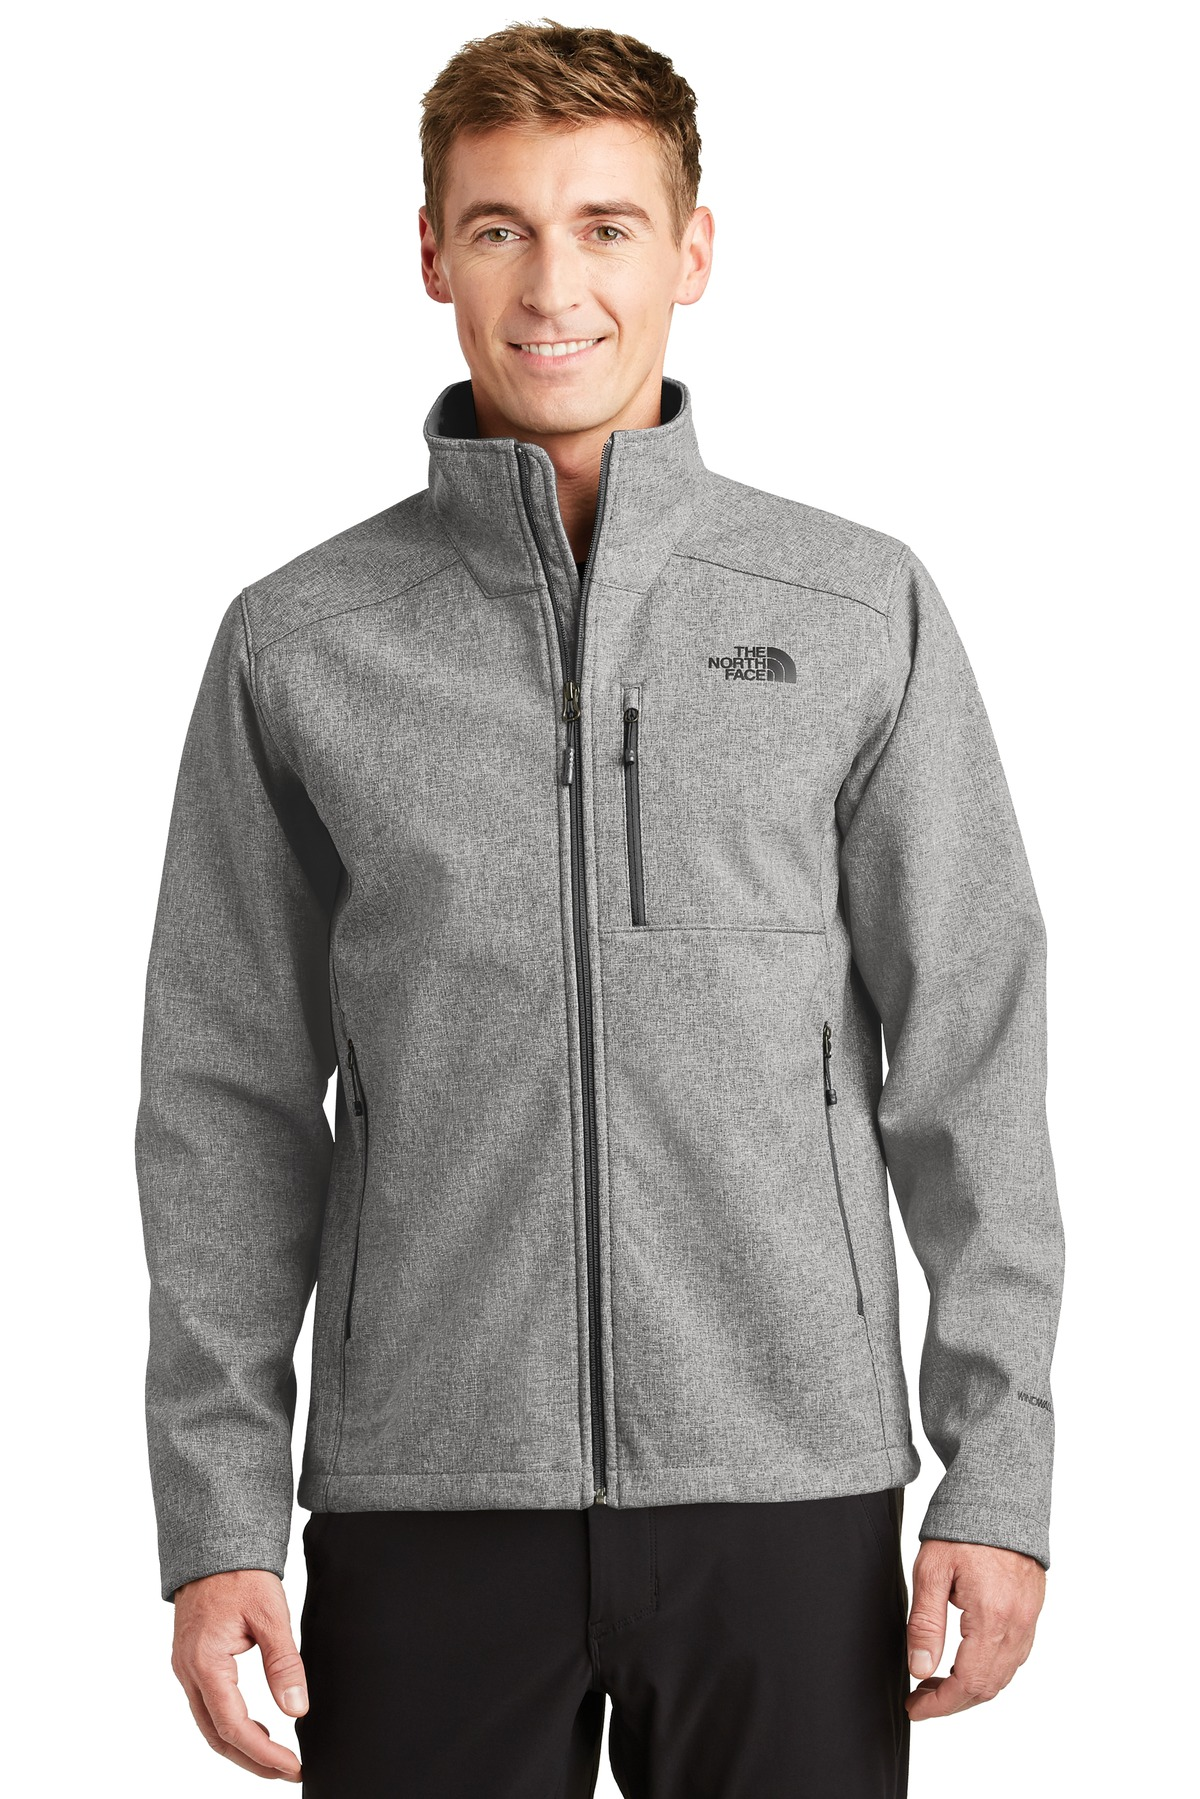 The North Face  ®  Apex Barrier Soft Shell Jacket. NF0A3LGT - TNF Medium Grey Heather